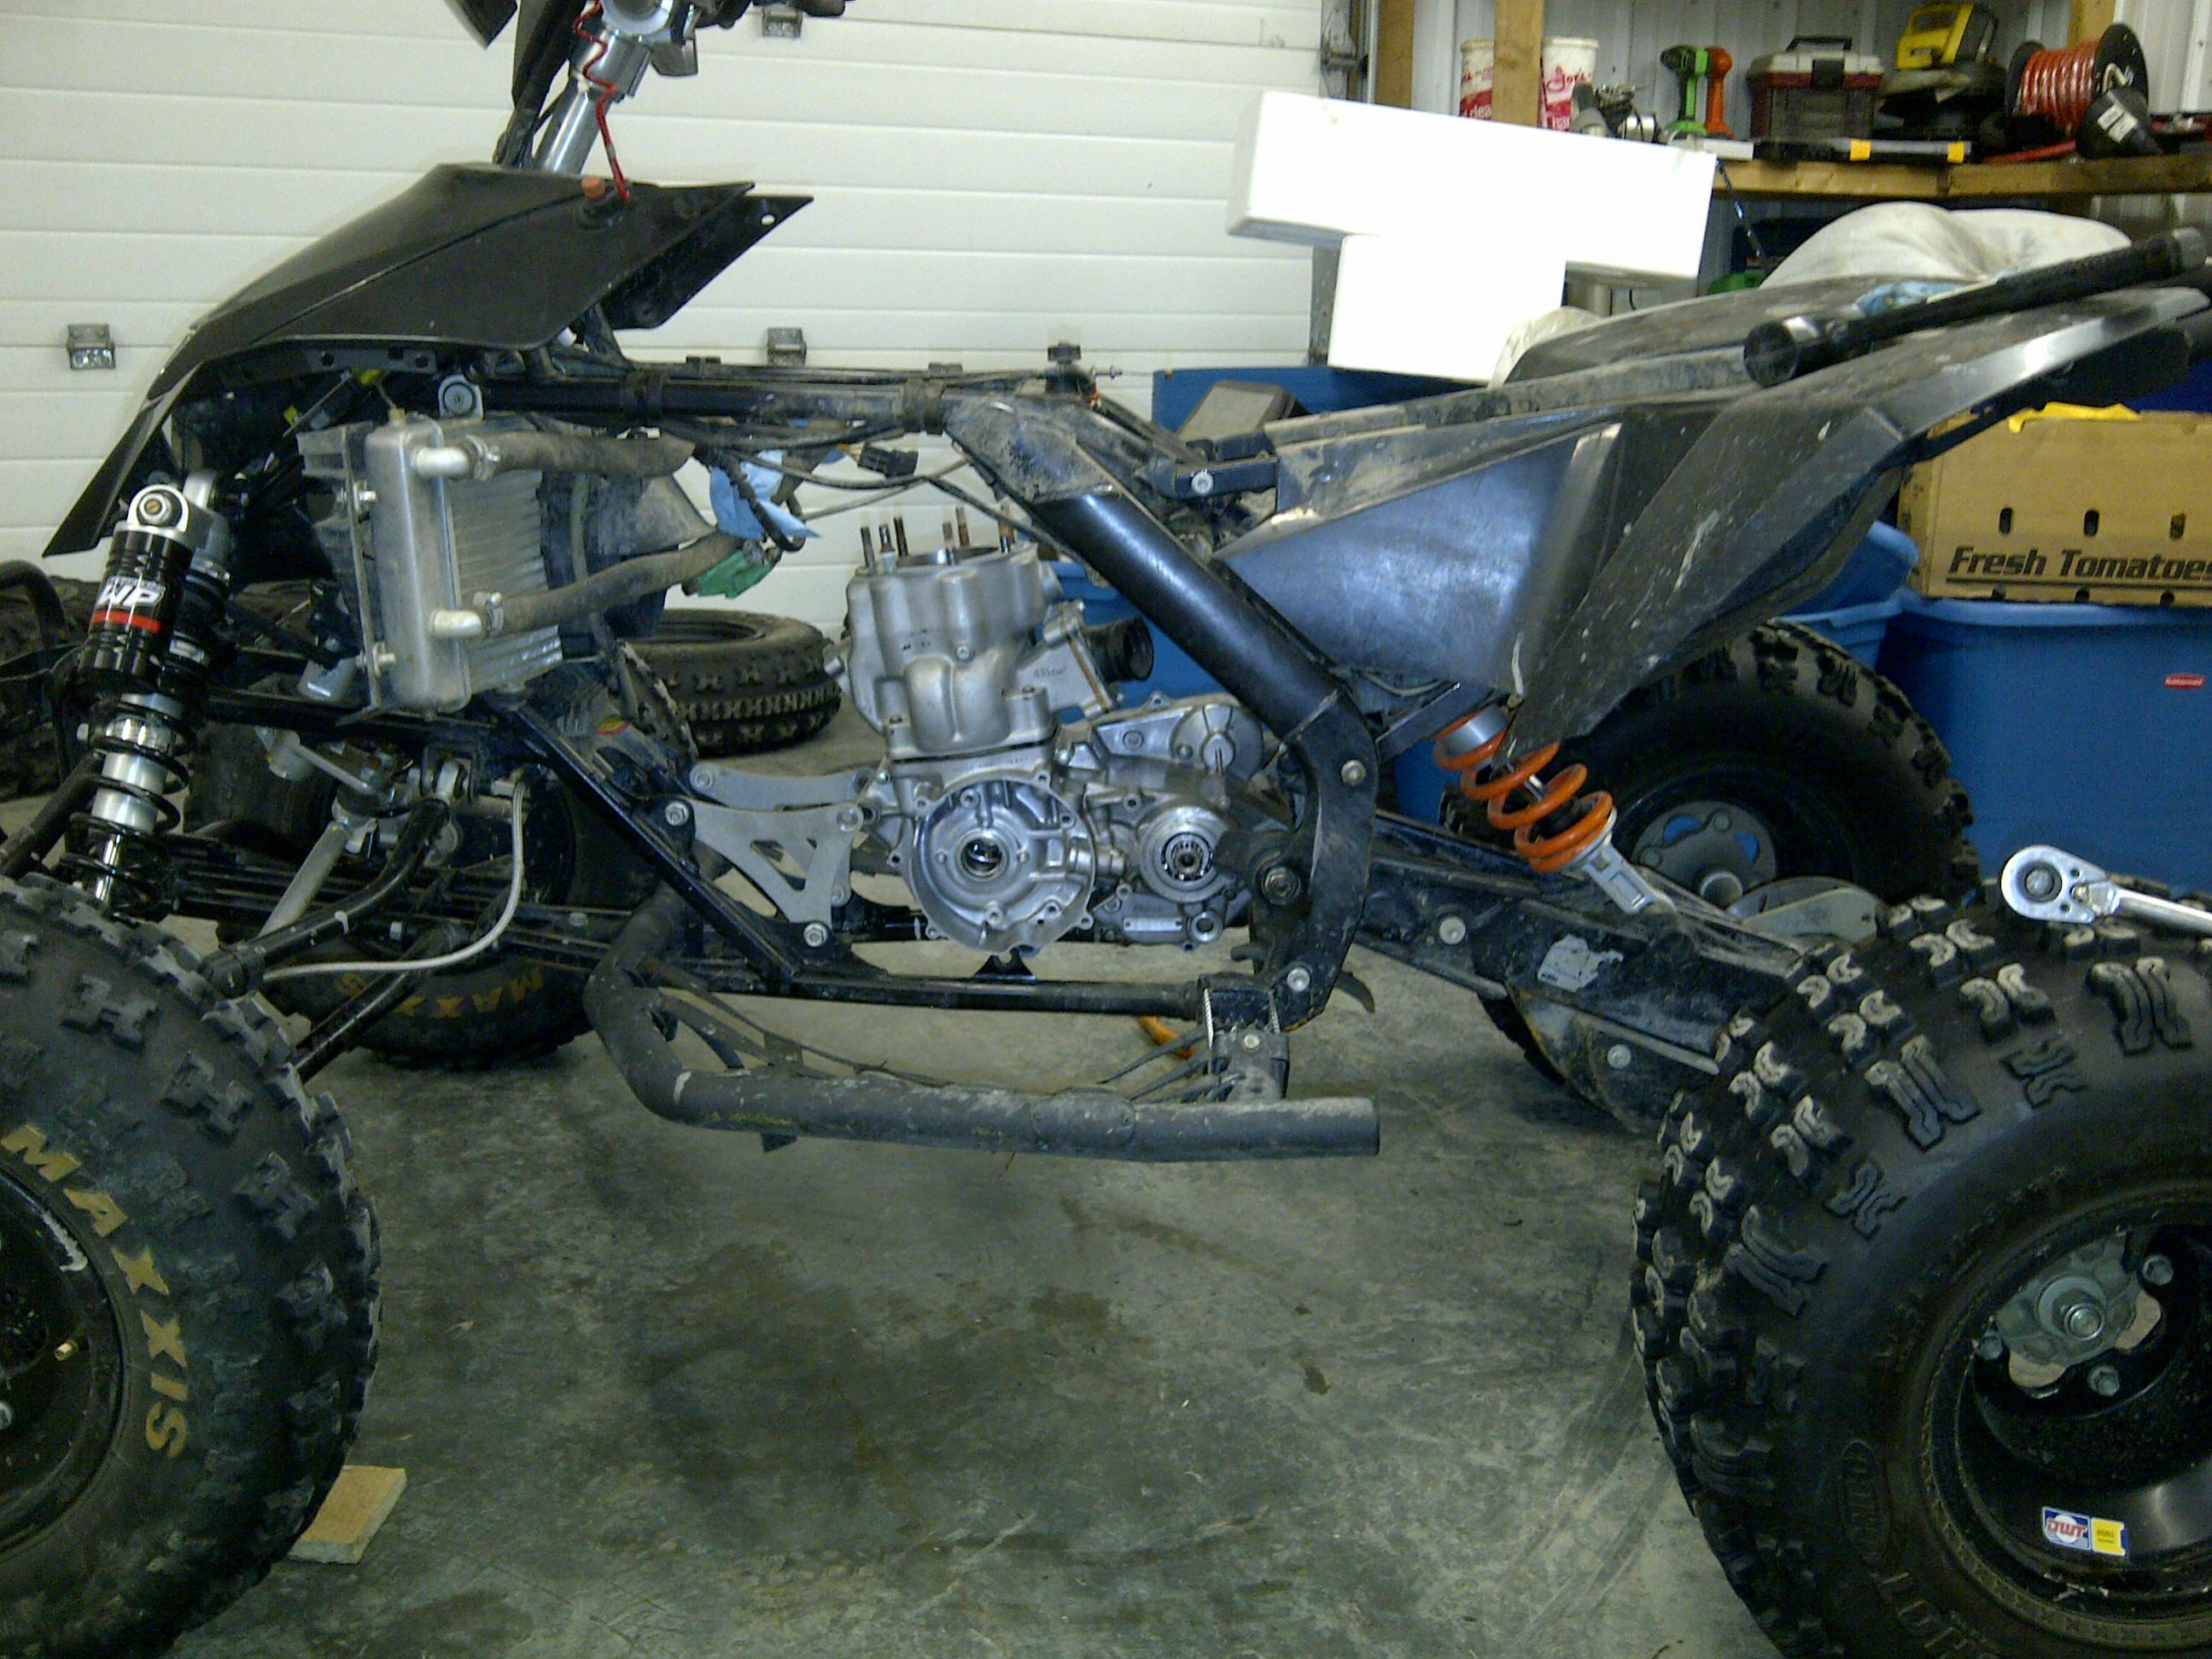 ktm/cr500 2 stroke conversion